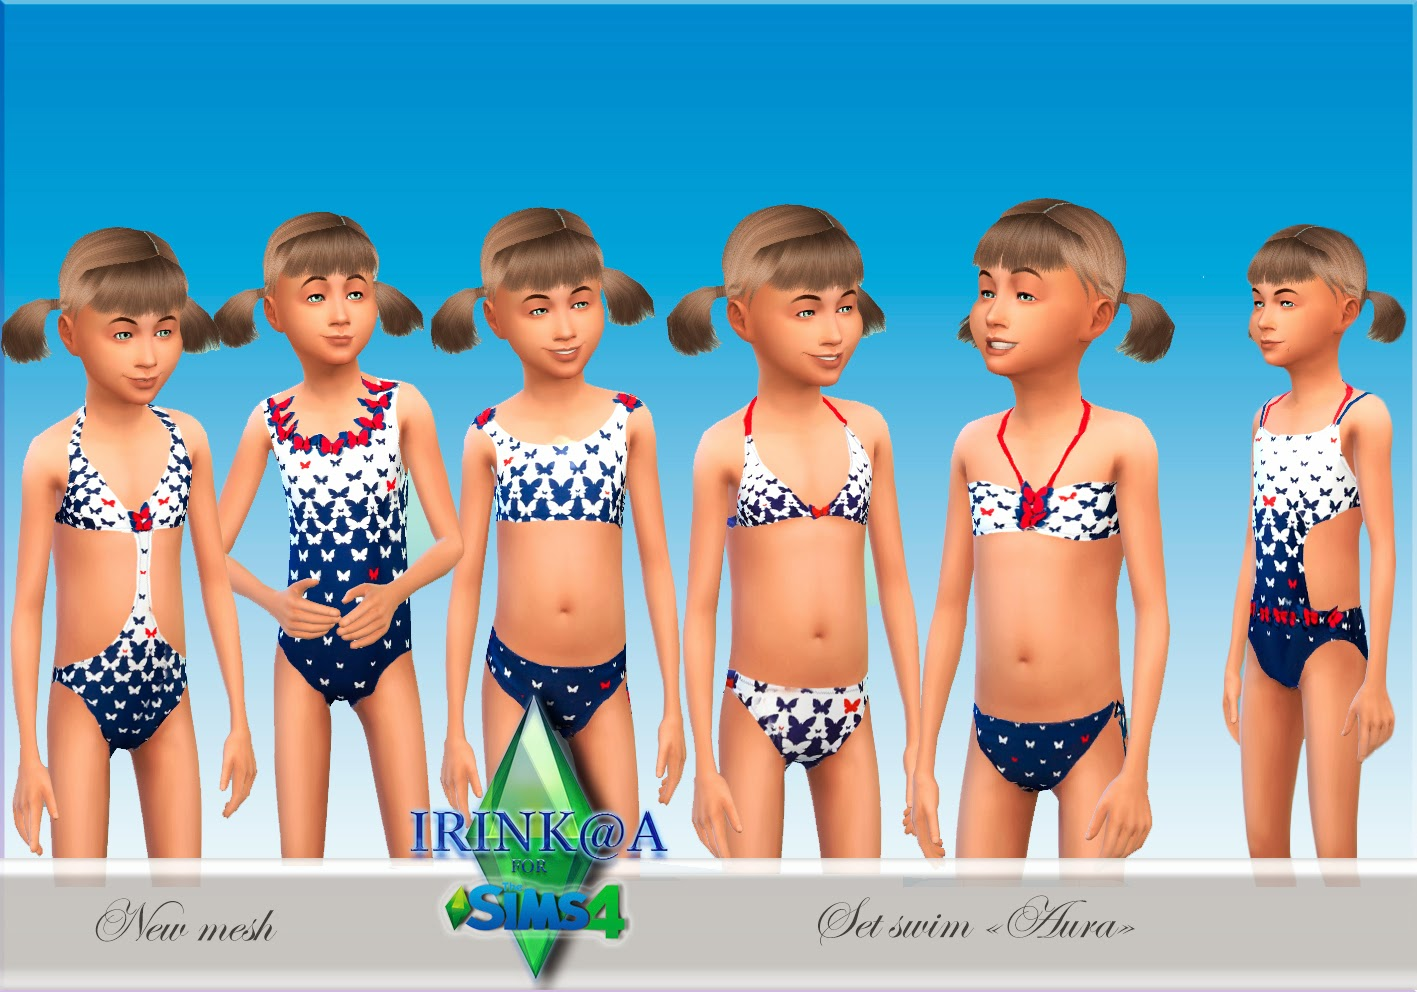 Swimwears for Girls by Irink@a